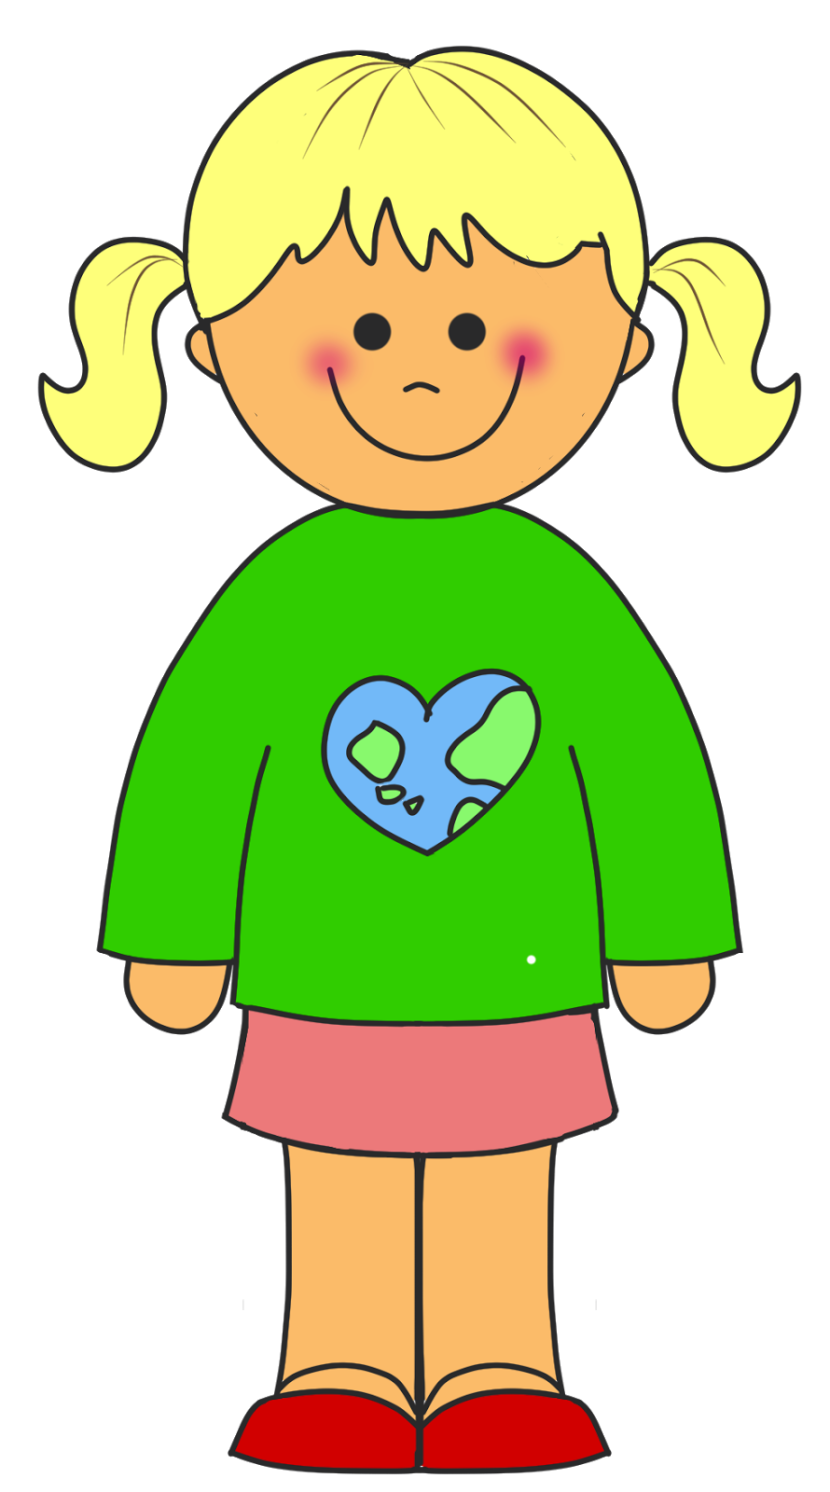 Clipart of a girl standing vector free stock Free Girl Standing Clipart Pictures - Clipartix vector free stock